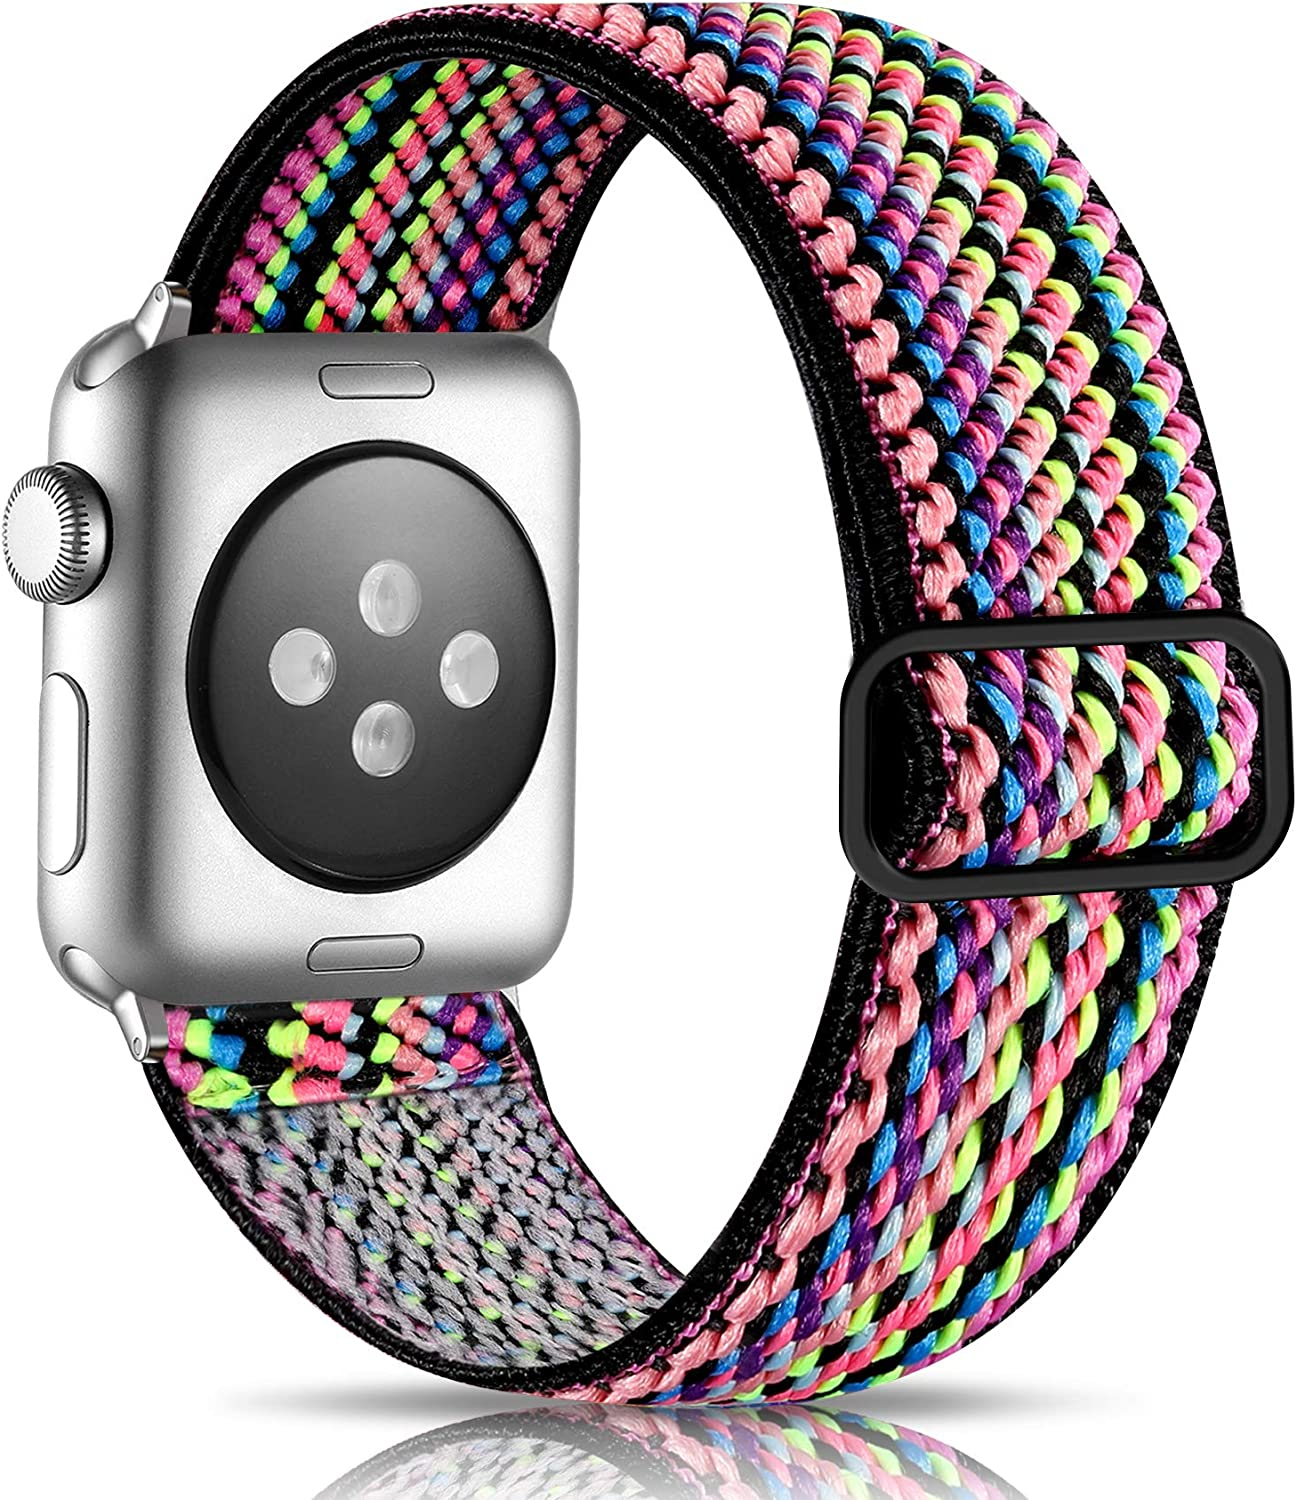 Getino Adjustable Elastic Band Compatible with Apple Watch 40mm 38mm 42mm 44mm for Women Men, Soft Stylish Cute Stretchy Woven Fabric Pattern Sport Strap Wristband for iWatch SE & Series 6 5 4 3 2 1